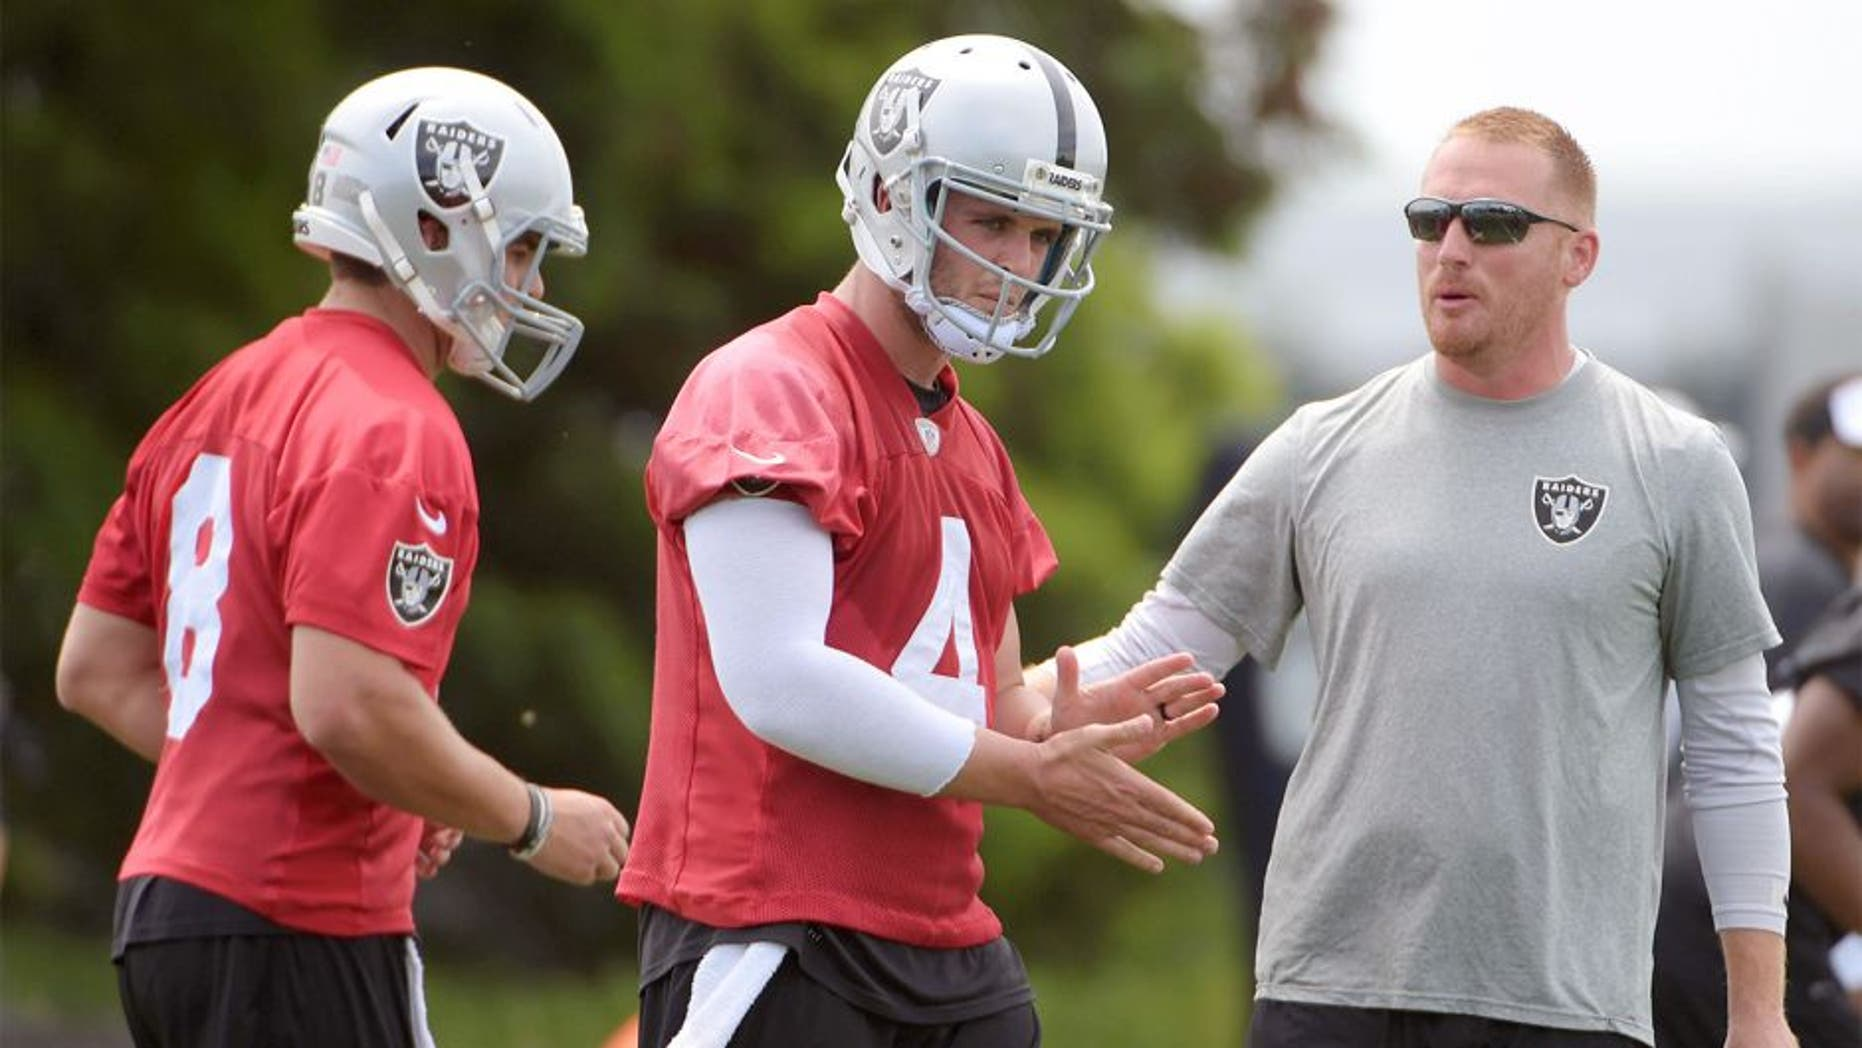 Jun 9, 2015; Oakland, CA, USA; Oakland Raiders quarterbacks coach Todd Downing (right) with quarterbacks Cody Fajardo (8) and Derek Carr (4) at minicamp at the Raiders practice facility. Mandatory Credit: Kirby Lee-USA TODAY Sports